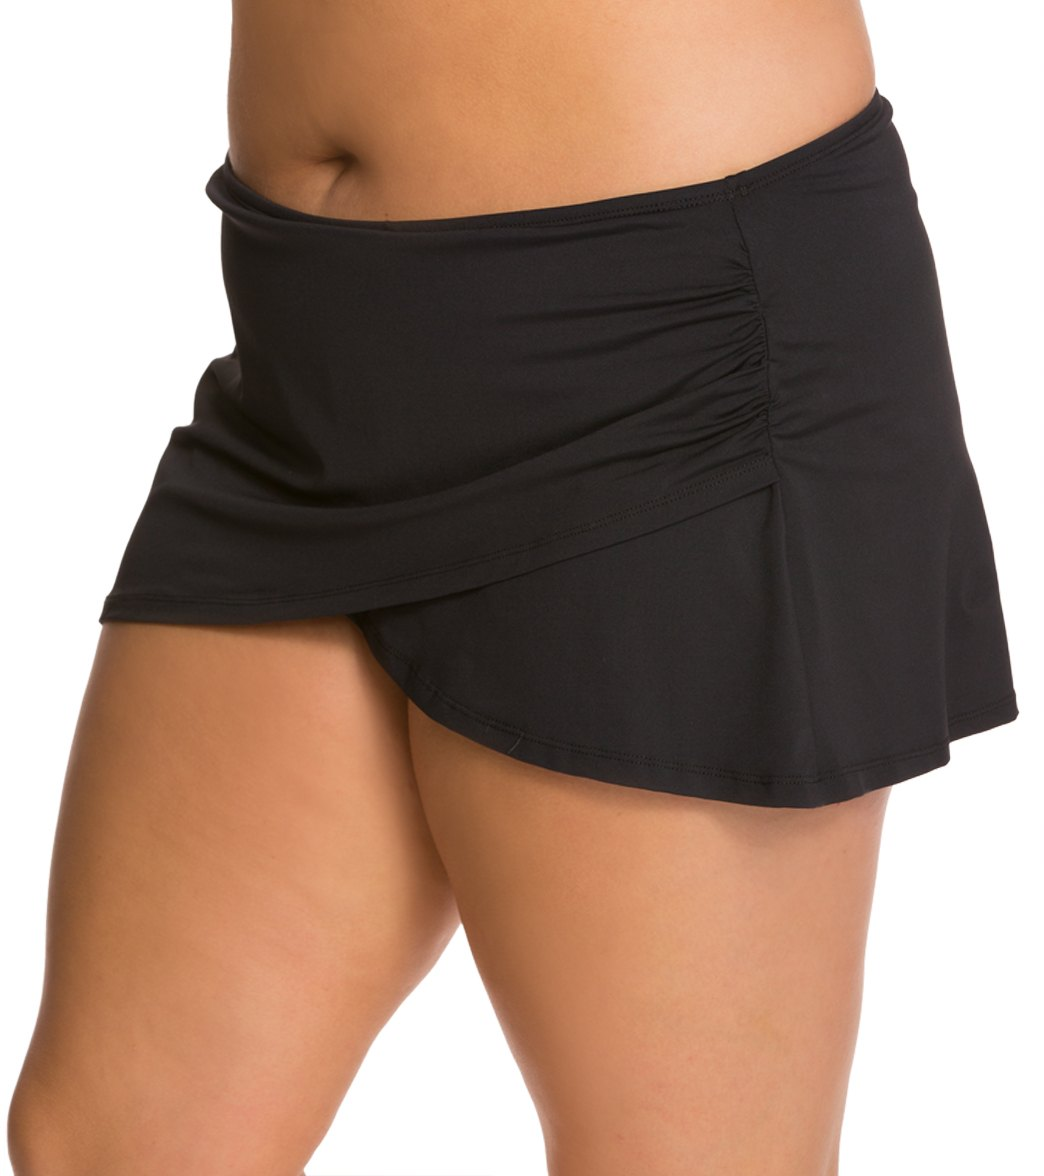 d83726ed01 Anne Cole Plus Size Solids Sarong Swim Skirt at SwimOutlet.com - Free  Shipping